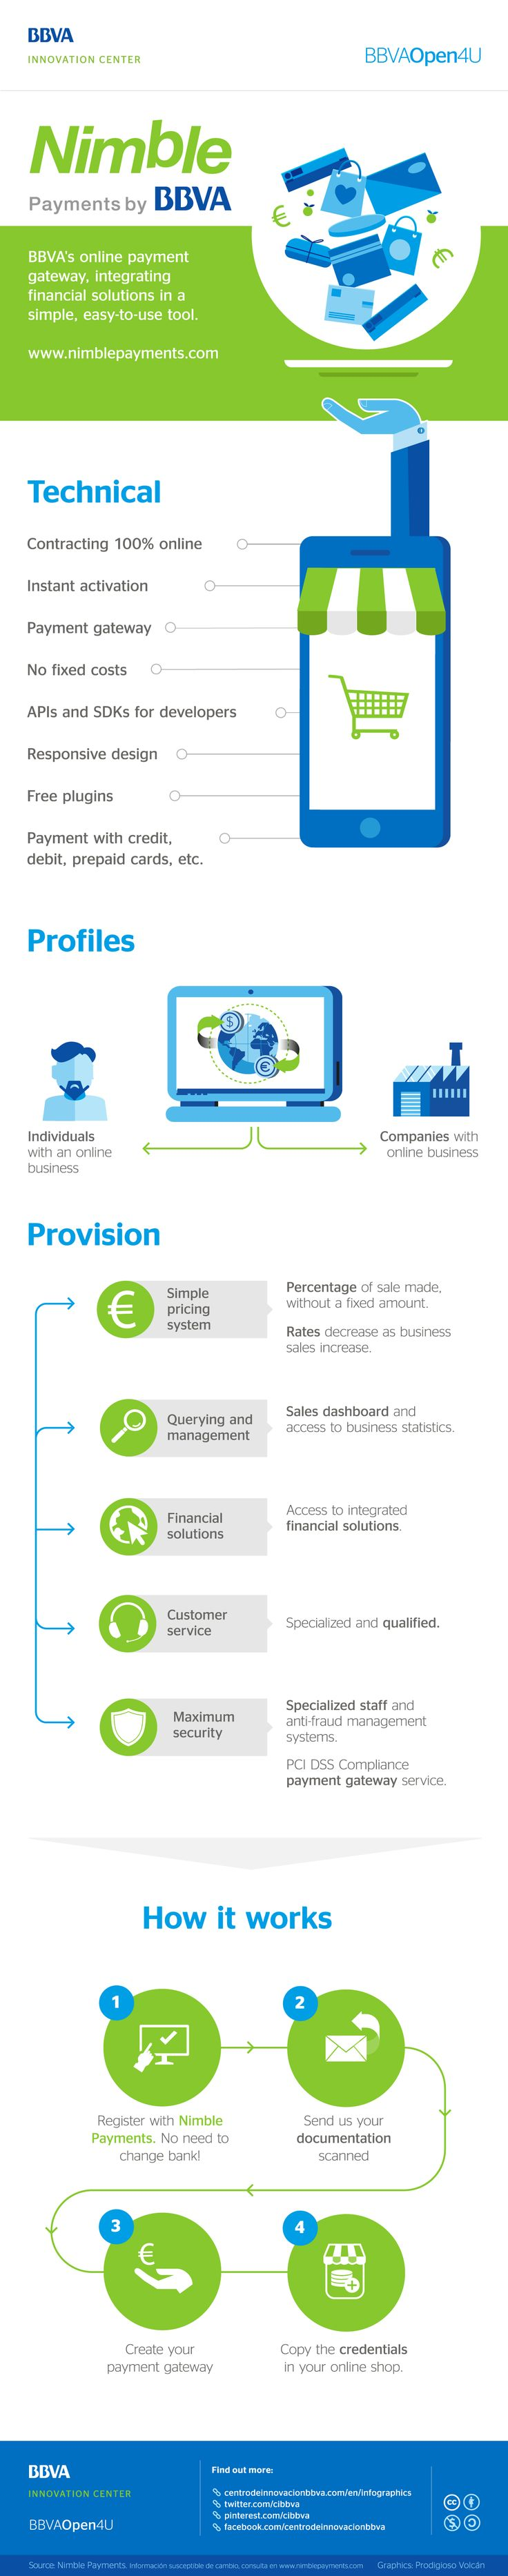 Infographic: This is Nimble Payments #Mobile #Payments #Startups #Online #Fintech #Digital #Infographic #BBVA #Innovation